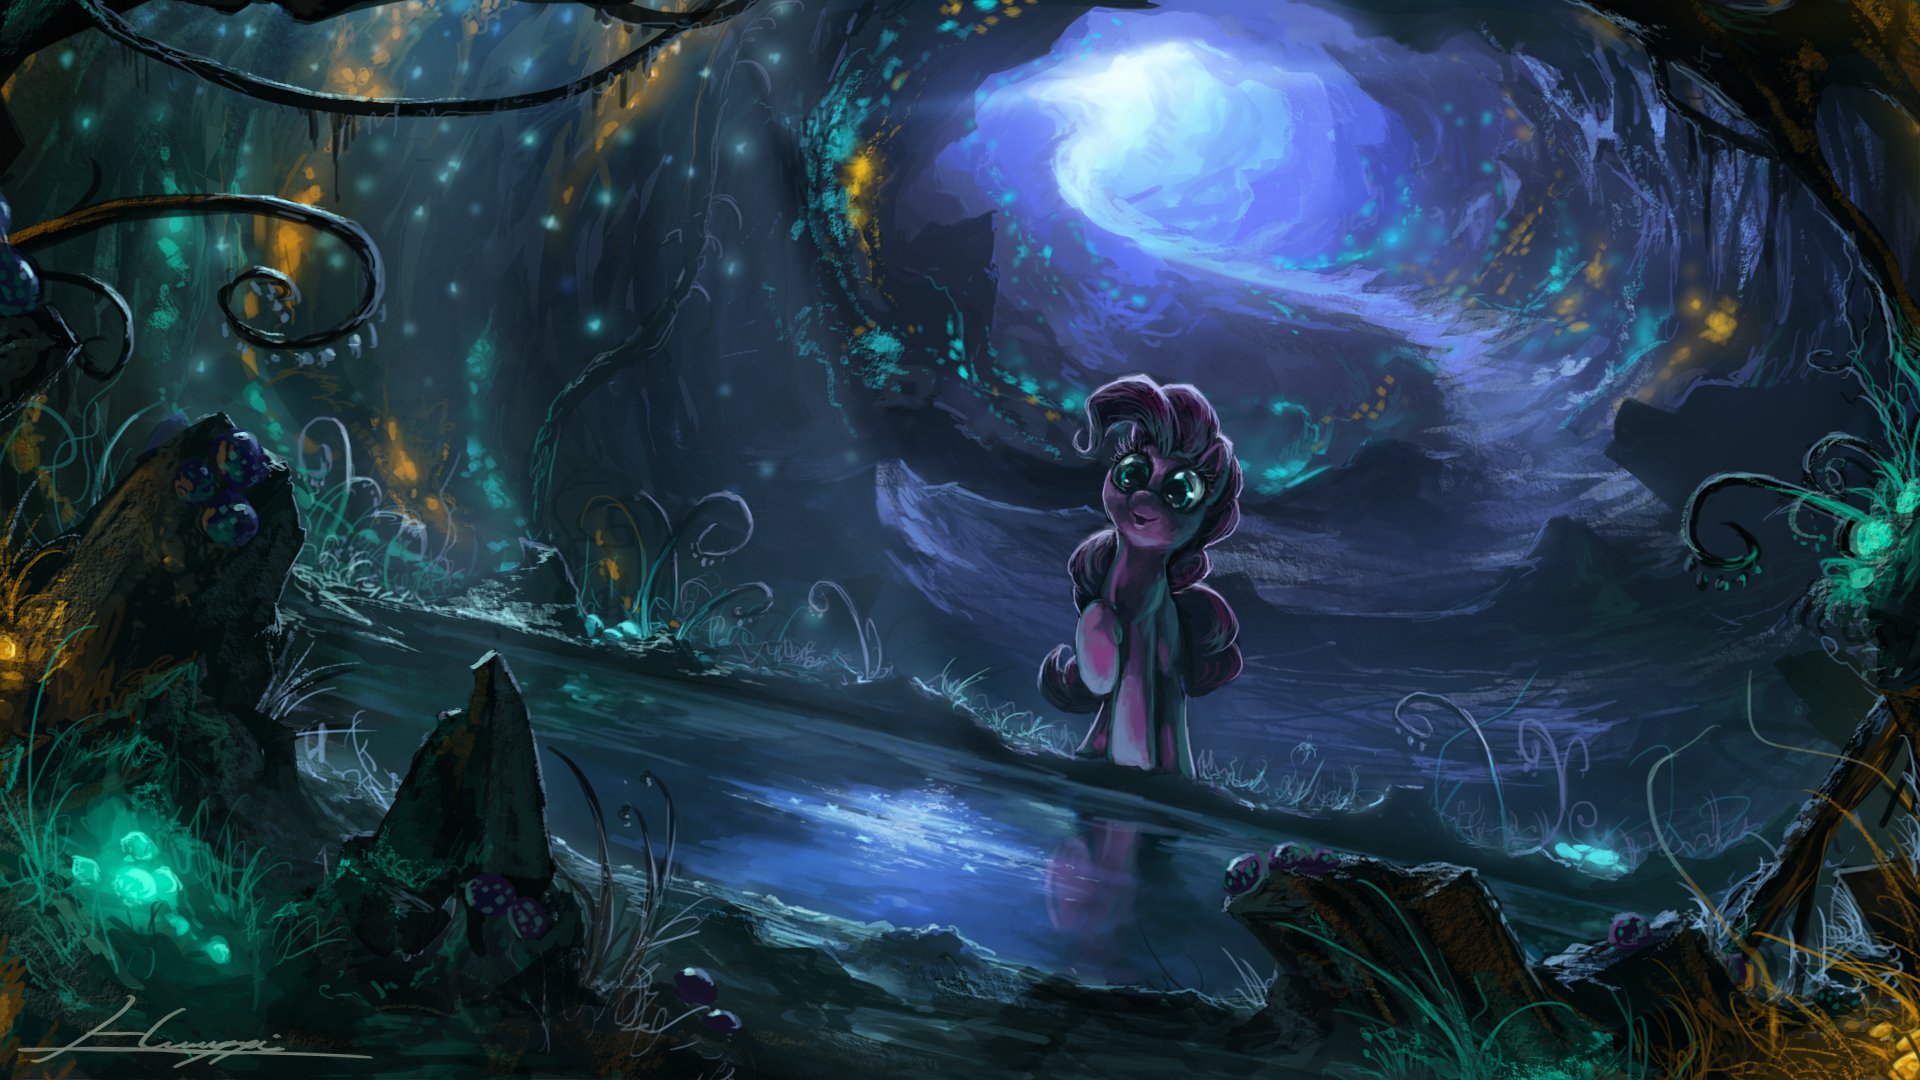 Free Download My Little Pony Friendship Is Magic Images Awesome